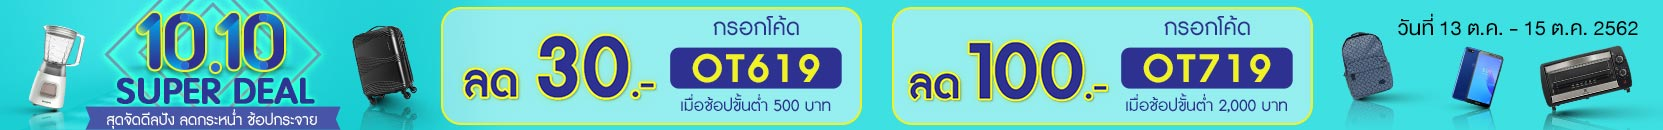 Promo code 10.10 Super Deal (13-15 Oct 19)